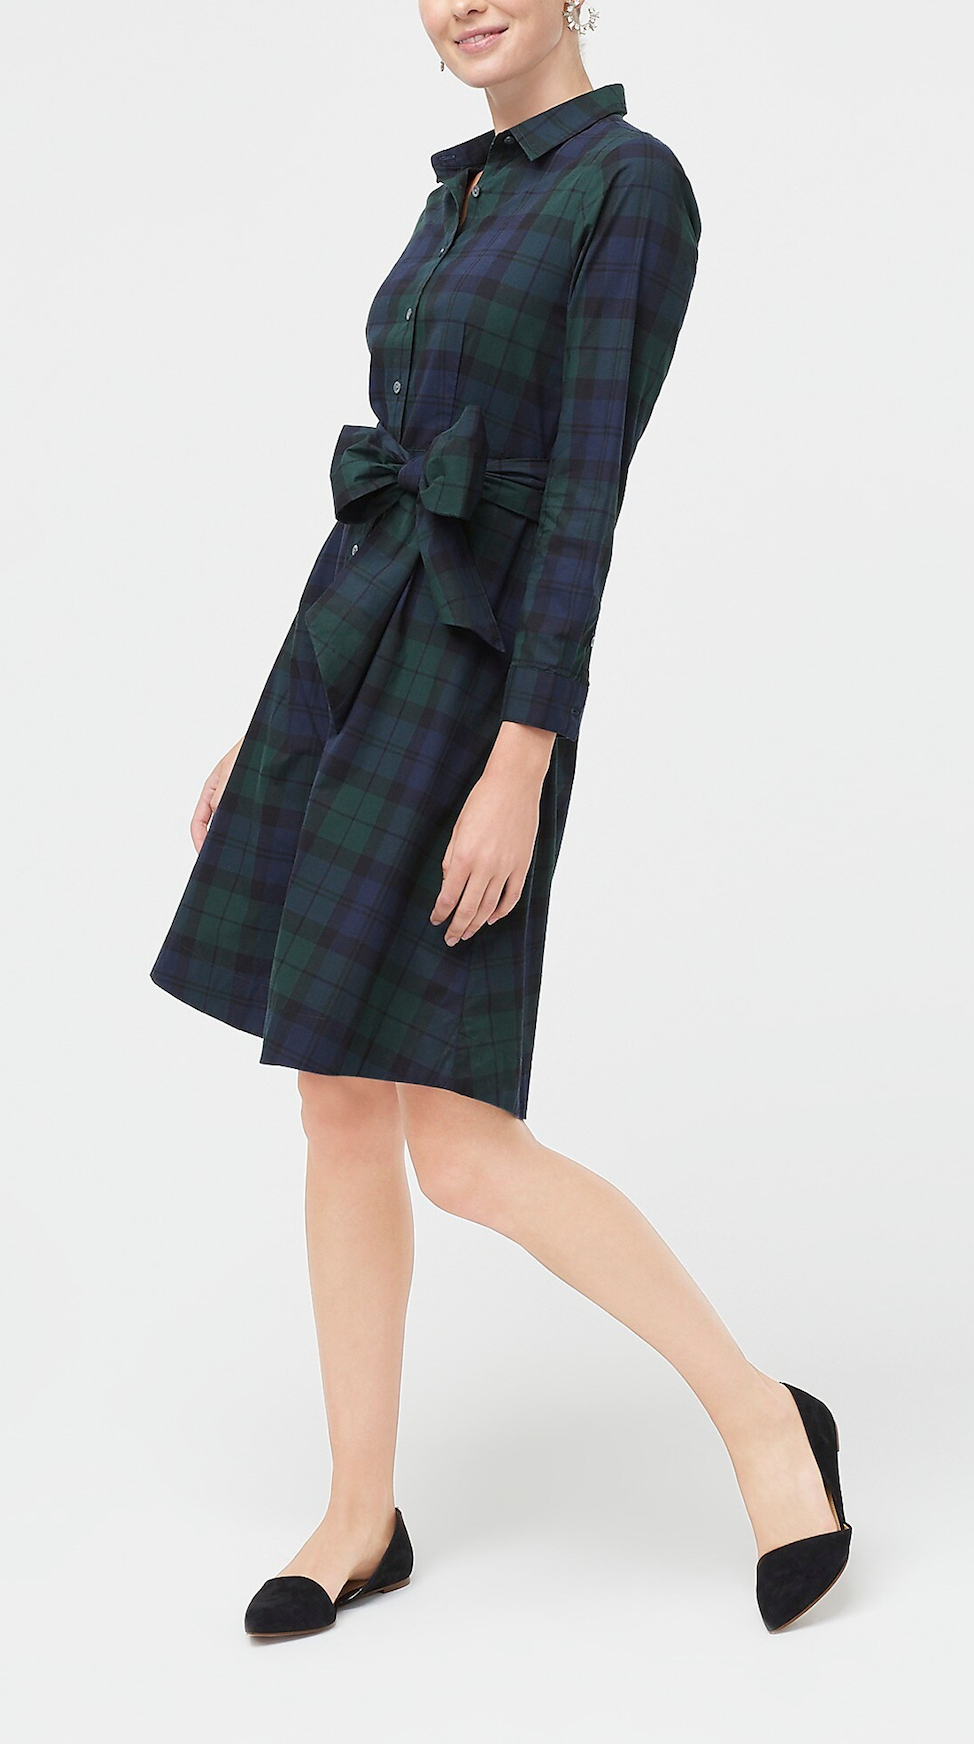 Black Watch Plaid Shirtdress